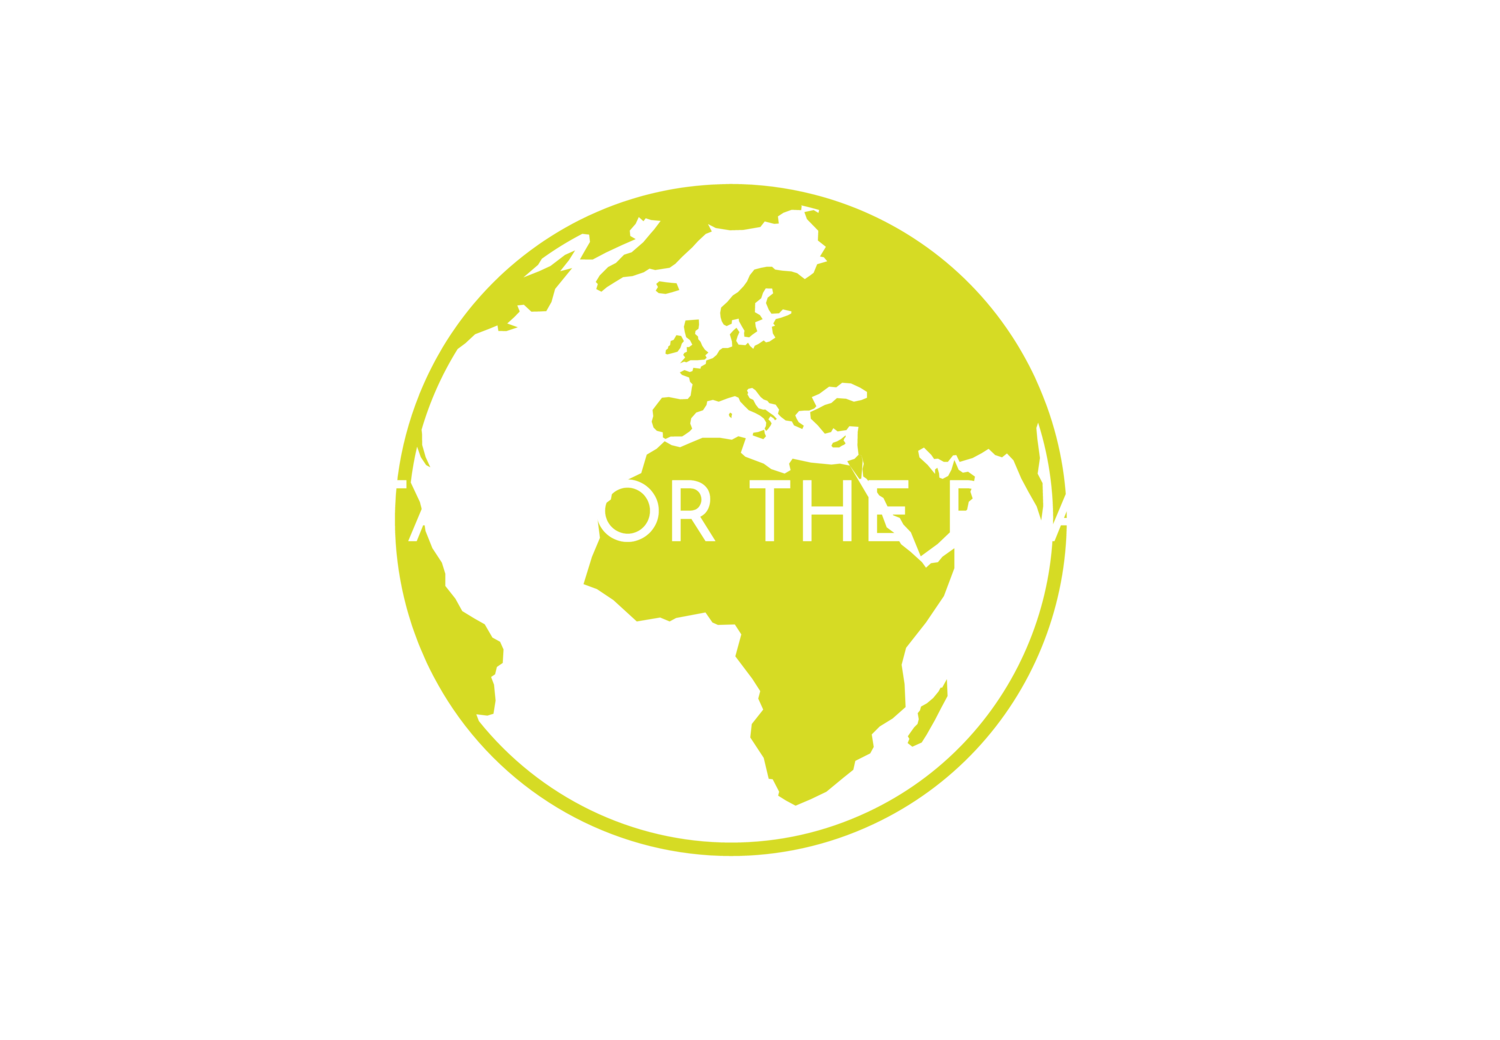 DIGITAL FOR THE PLANET